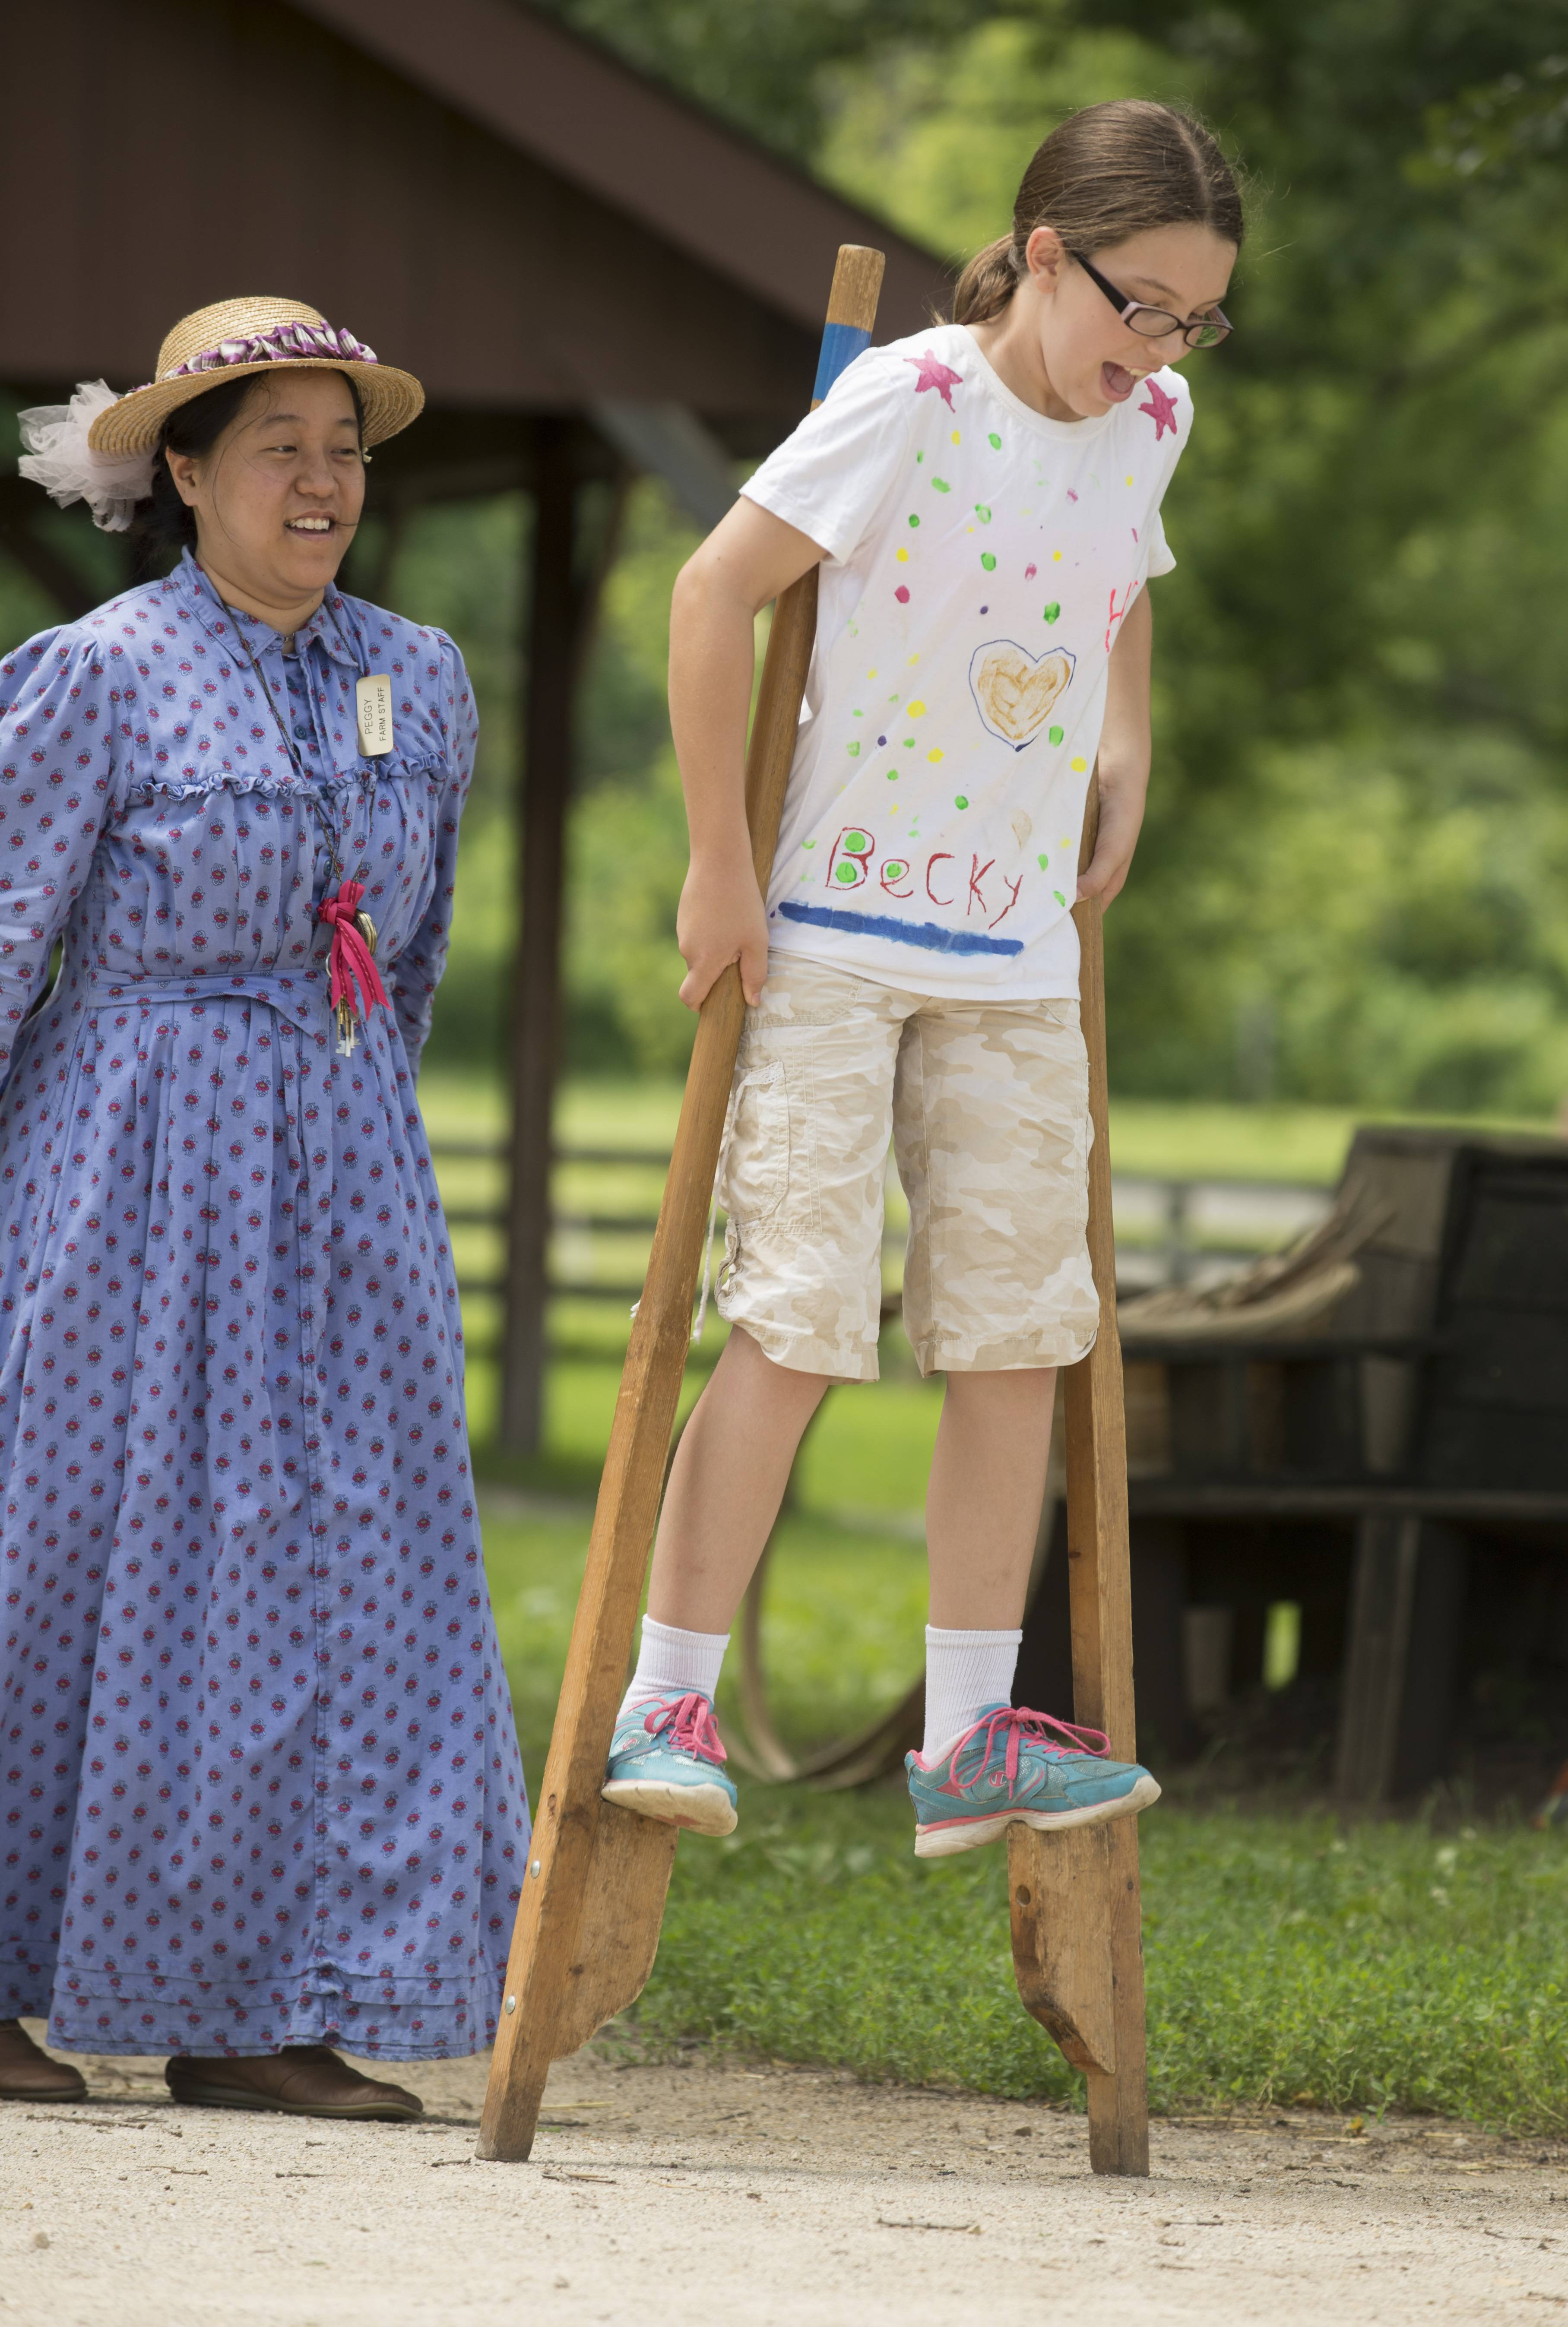 Seasonal staff member Peggy Kuo watches as Becky Reidy, 10, of Roselle tries out a pair of stilts Sunday during Kline Creek Farm's old-fashioned 4th of July celebration.